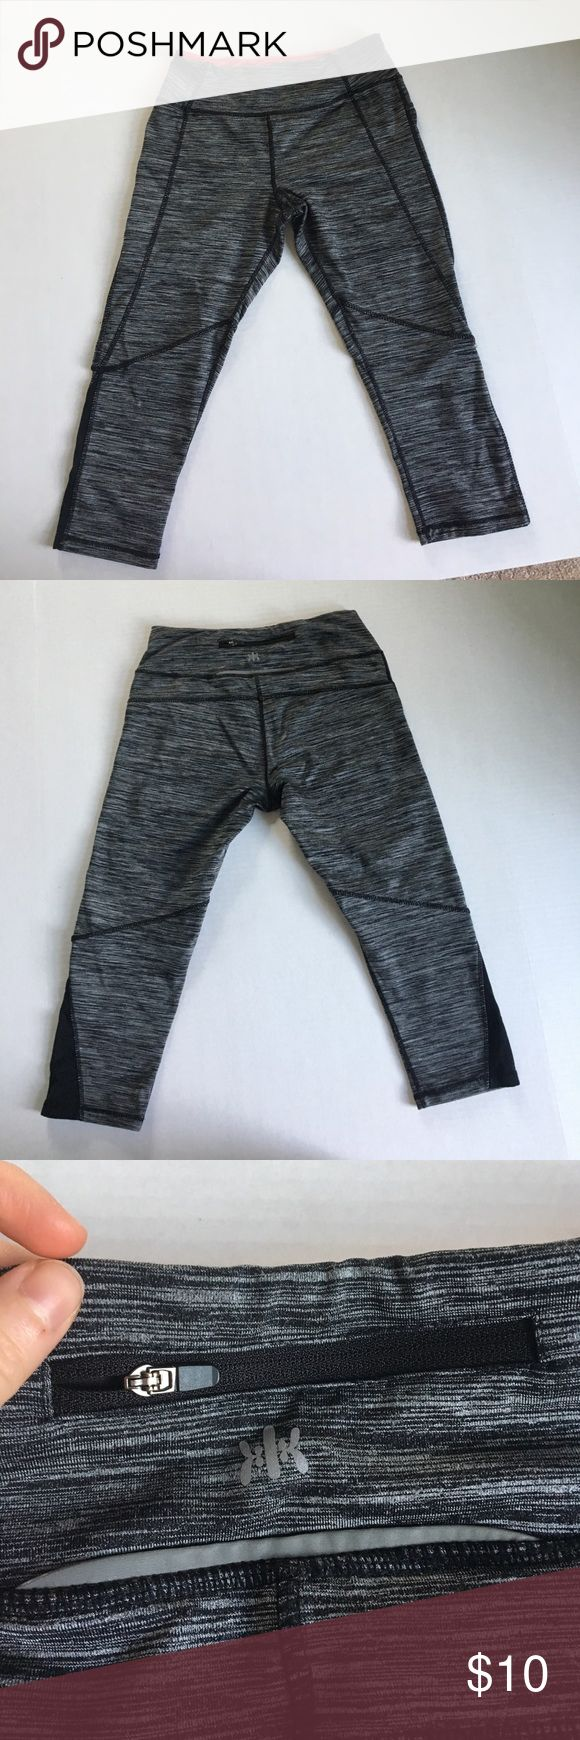 Kyodan crop gym pants These Kyodan crop gym pants are in awesome used condition! They have been worn a few times, but have so much life left to them! They're a size Petite/Small. Very stretchy, they're just too small for me. Small zip pocket on the waistband. Kyodan Pants Track Pants & Joggers